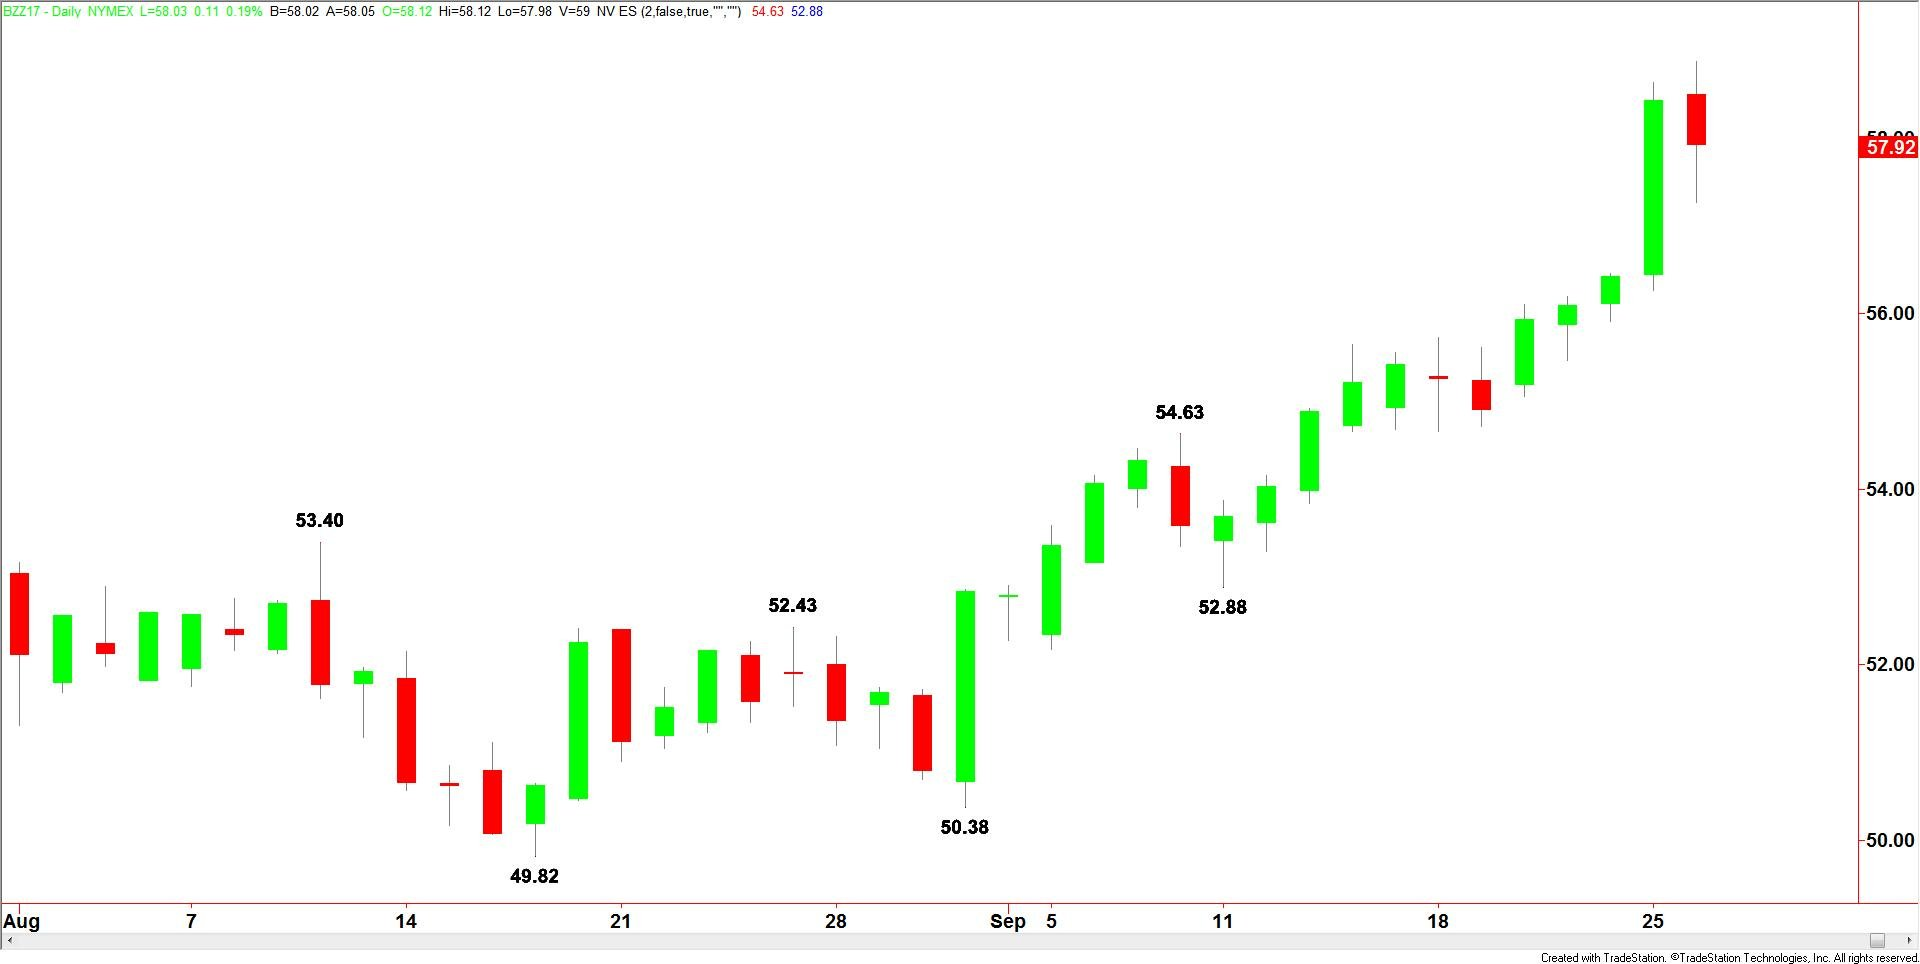 Daily-Brent-Crude-19